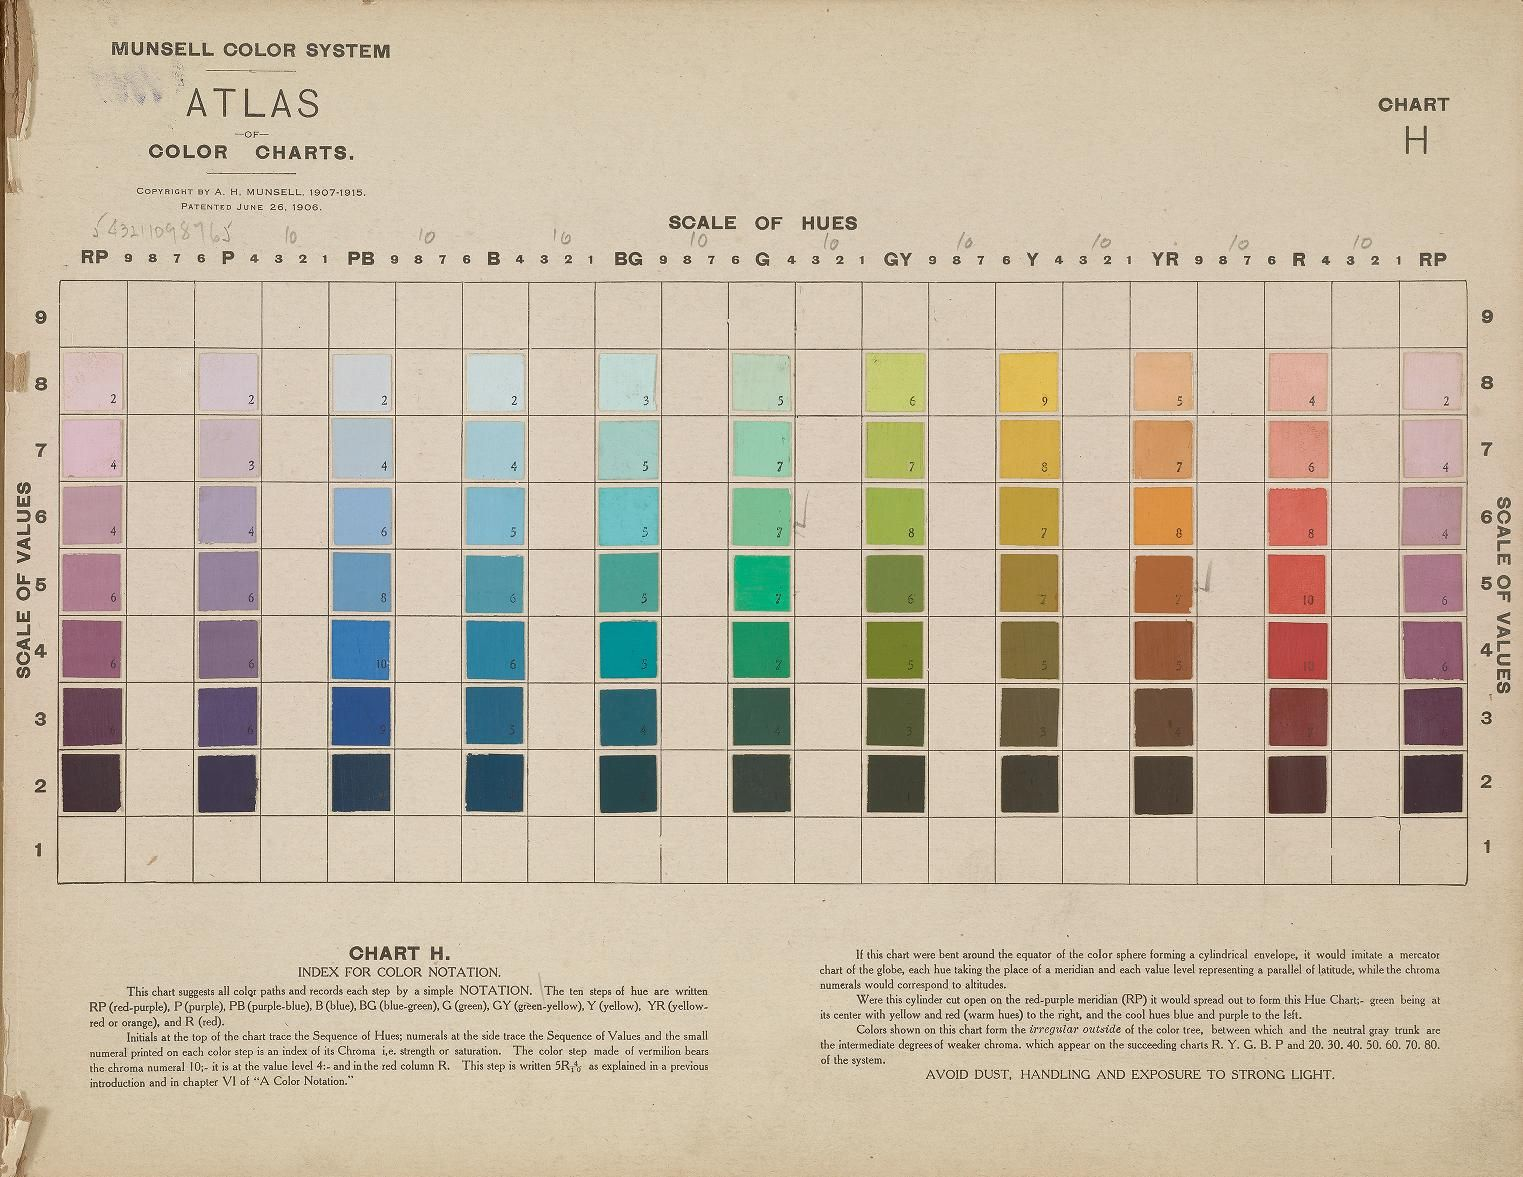 3 atlas of the munsell color system by ah munsell 1915 - Munsell Color Book